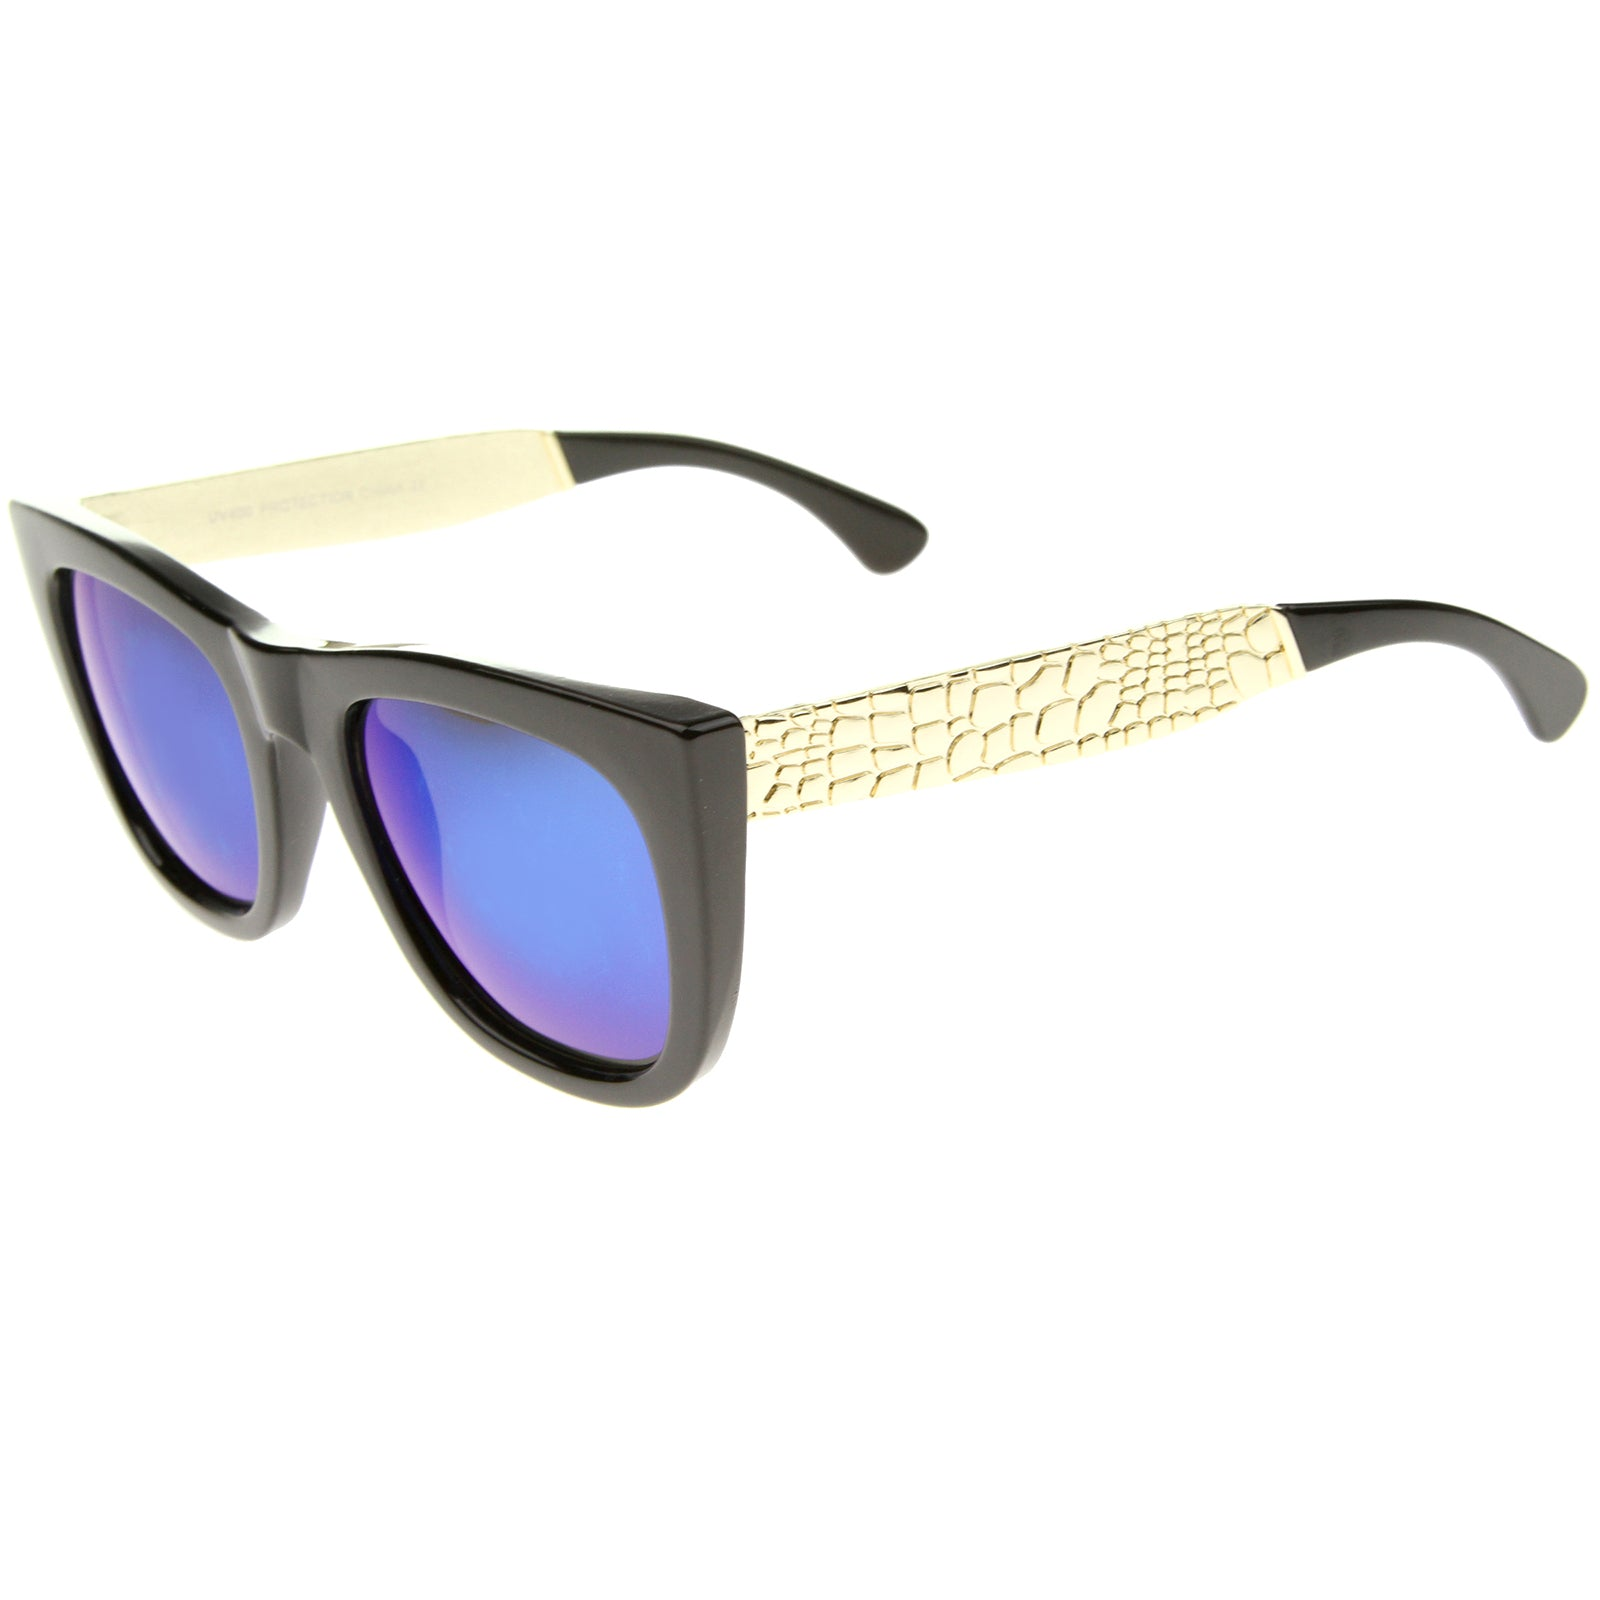 High Fashion Alligator Metal Temple Mirrored Lens Flat Top Sunglasses - sunglass.la